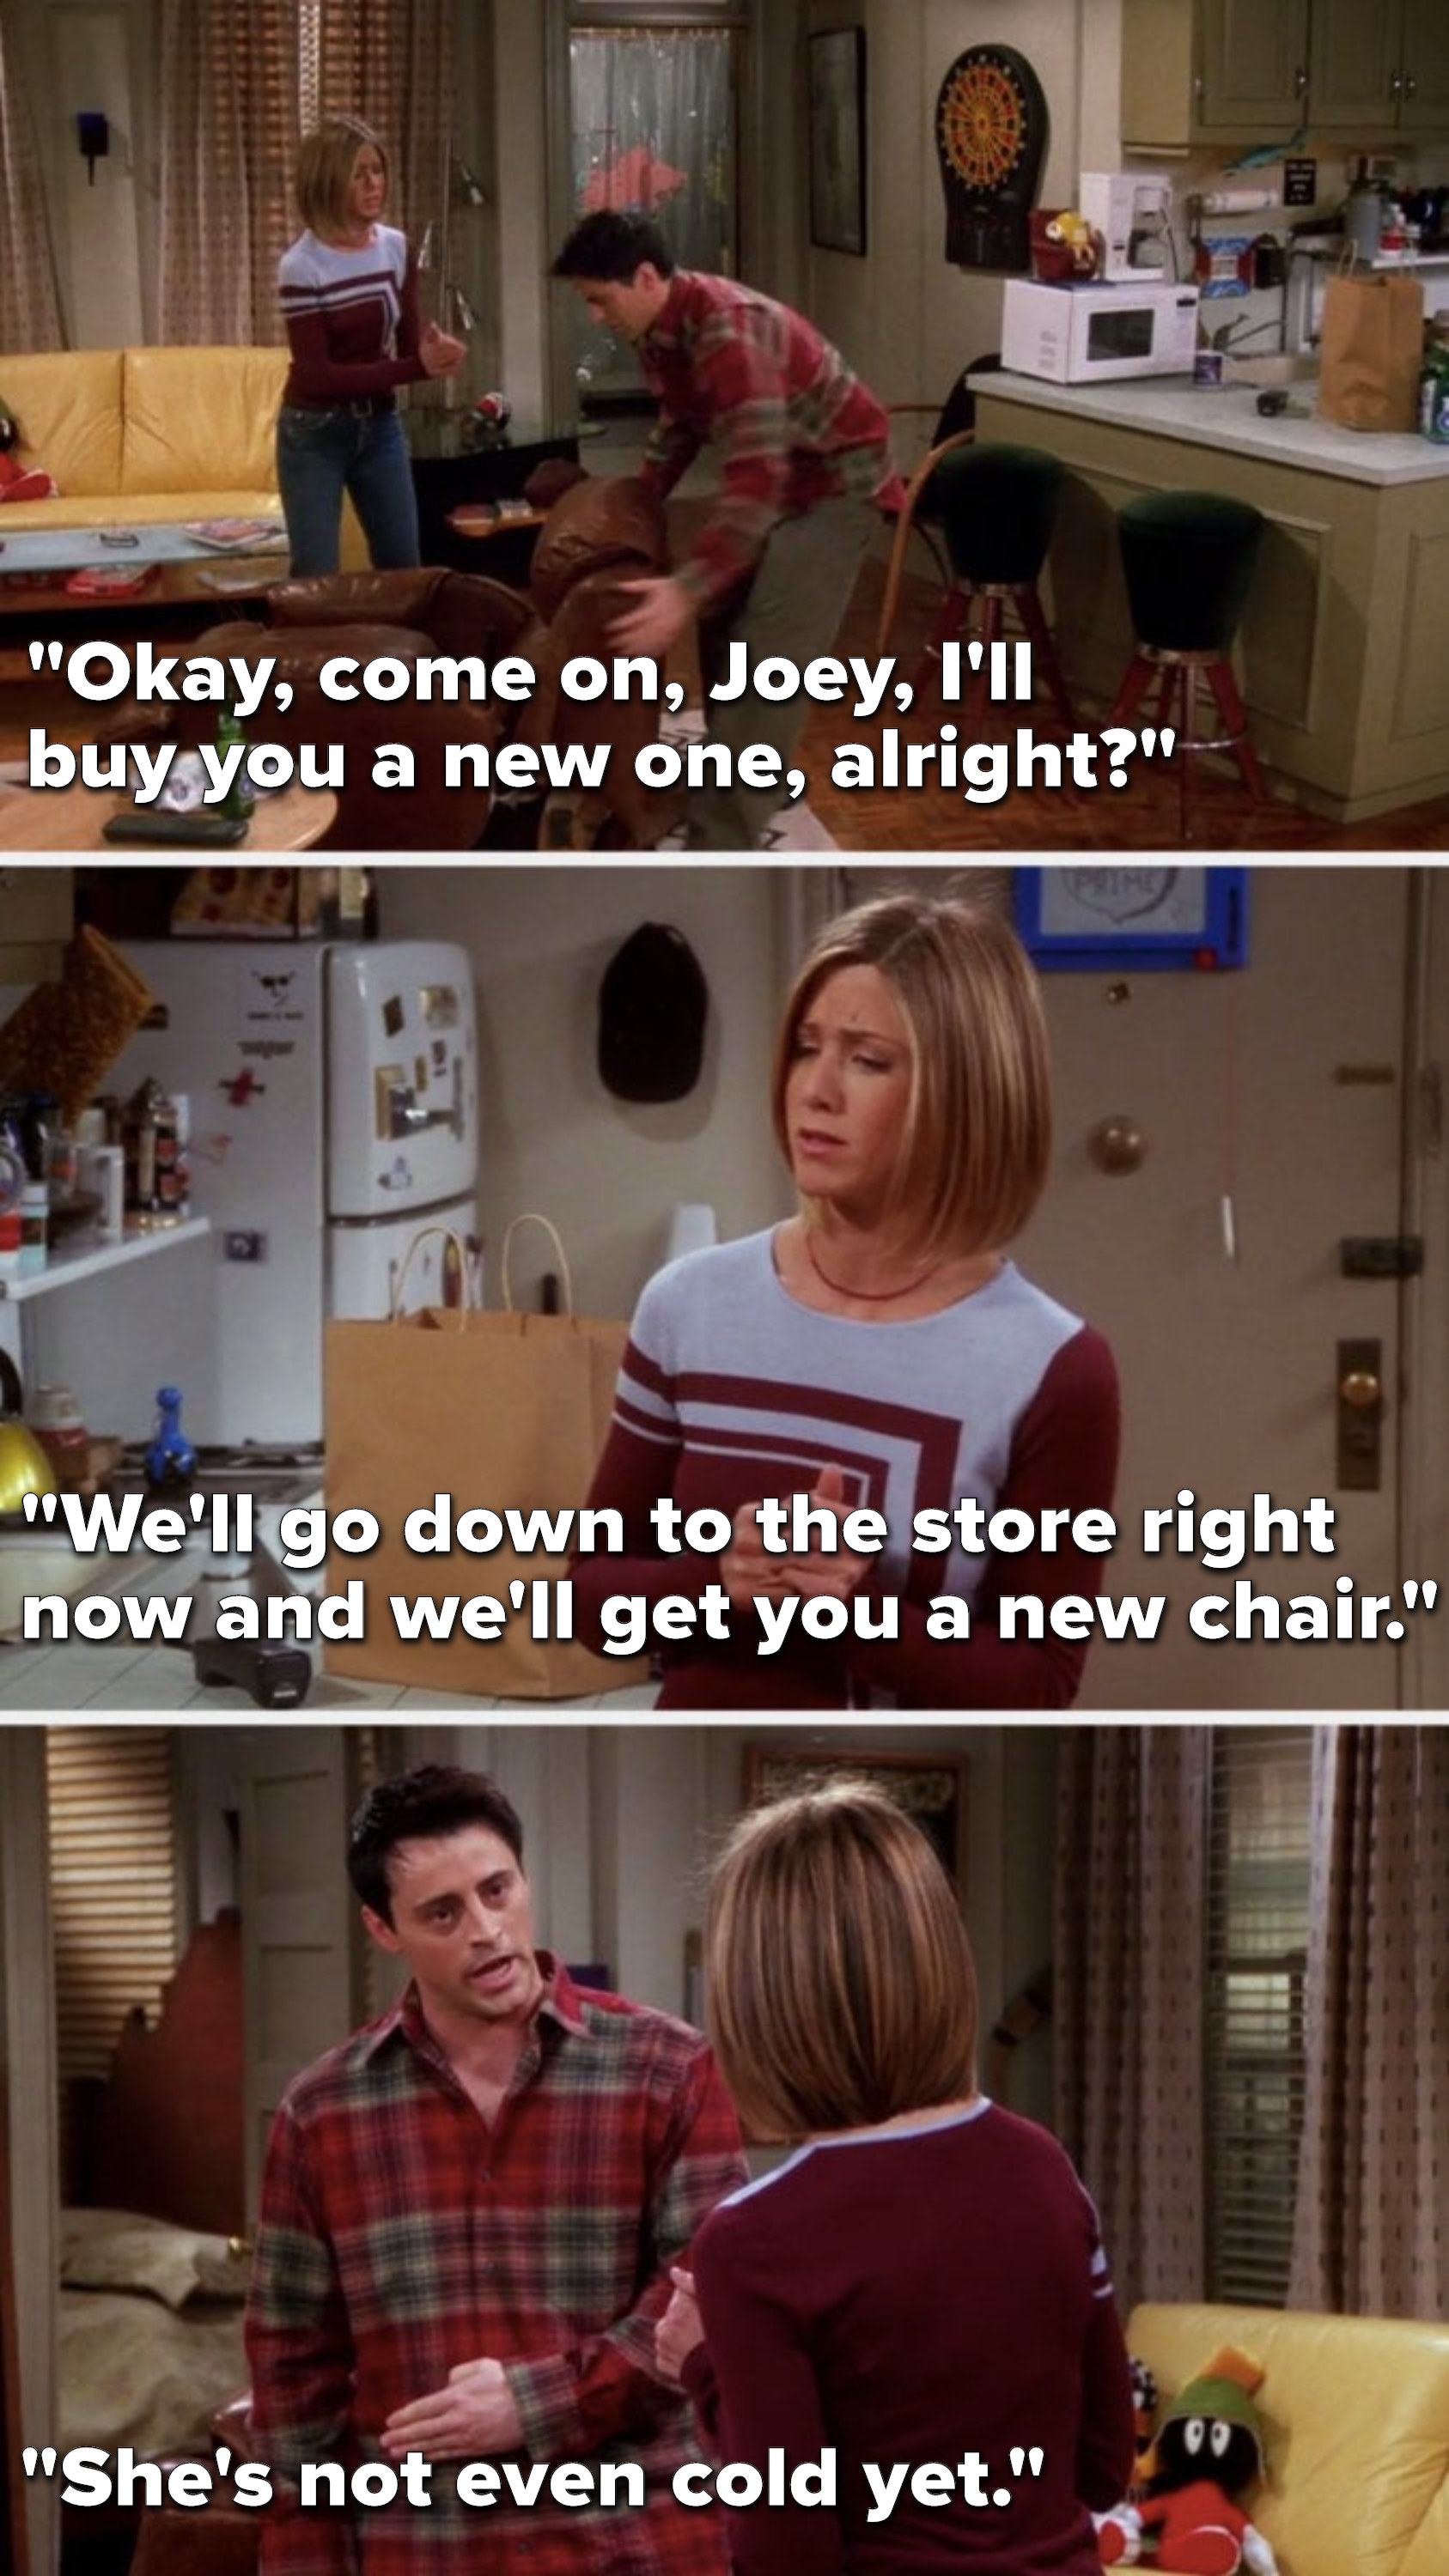 """Rachel says, """"Okay, come on, Joey, I'll buy you a new one, alright, we'll go down to the store right now and we'll get you a new chair,"""" and Joey says, """"She's not even cold yet"""""""